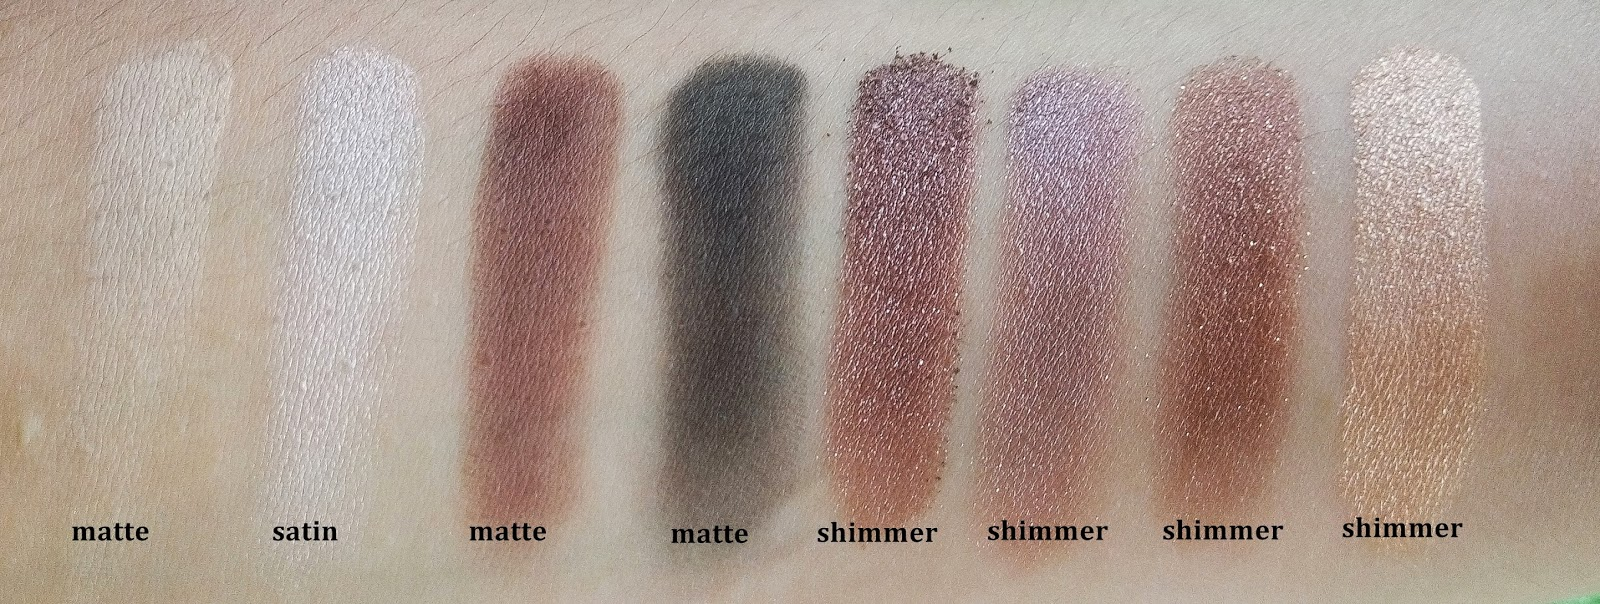 Review LT PRO Naturally Glam Eyeshadow Palette